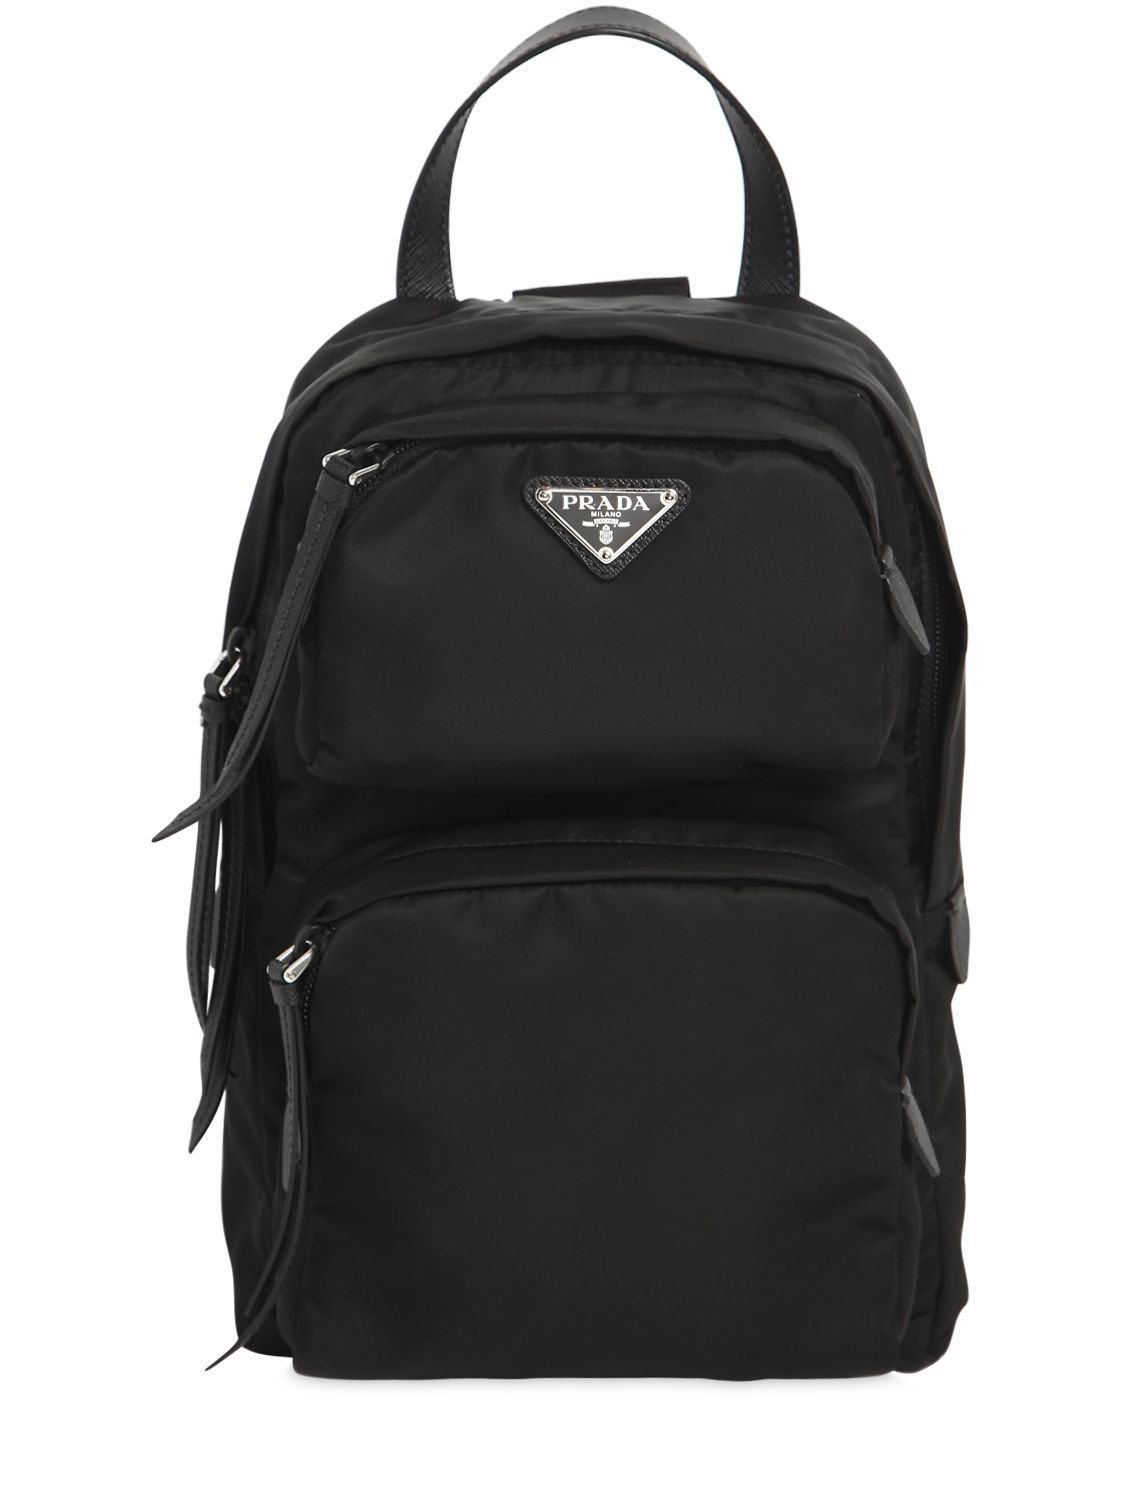 a5d92c9f3524 ... wholesale prada one shoulder nylon backpack. prada bags leather lining  nylon e3f9d 7abc0